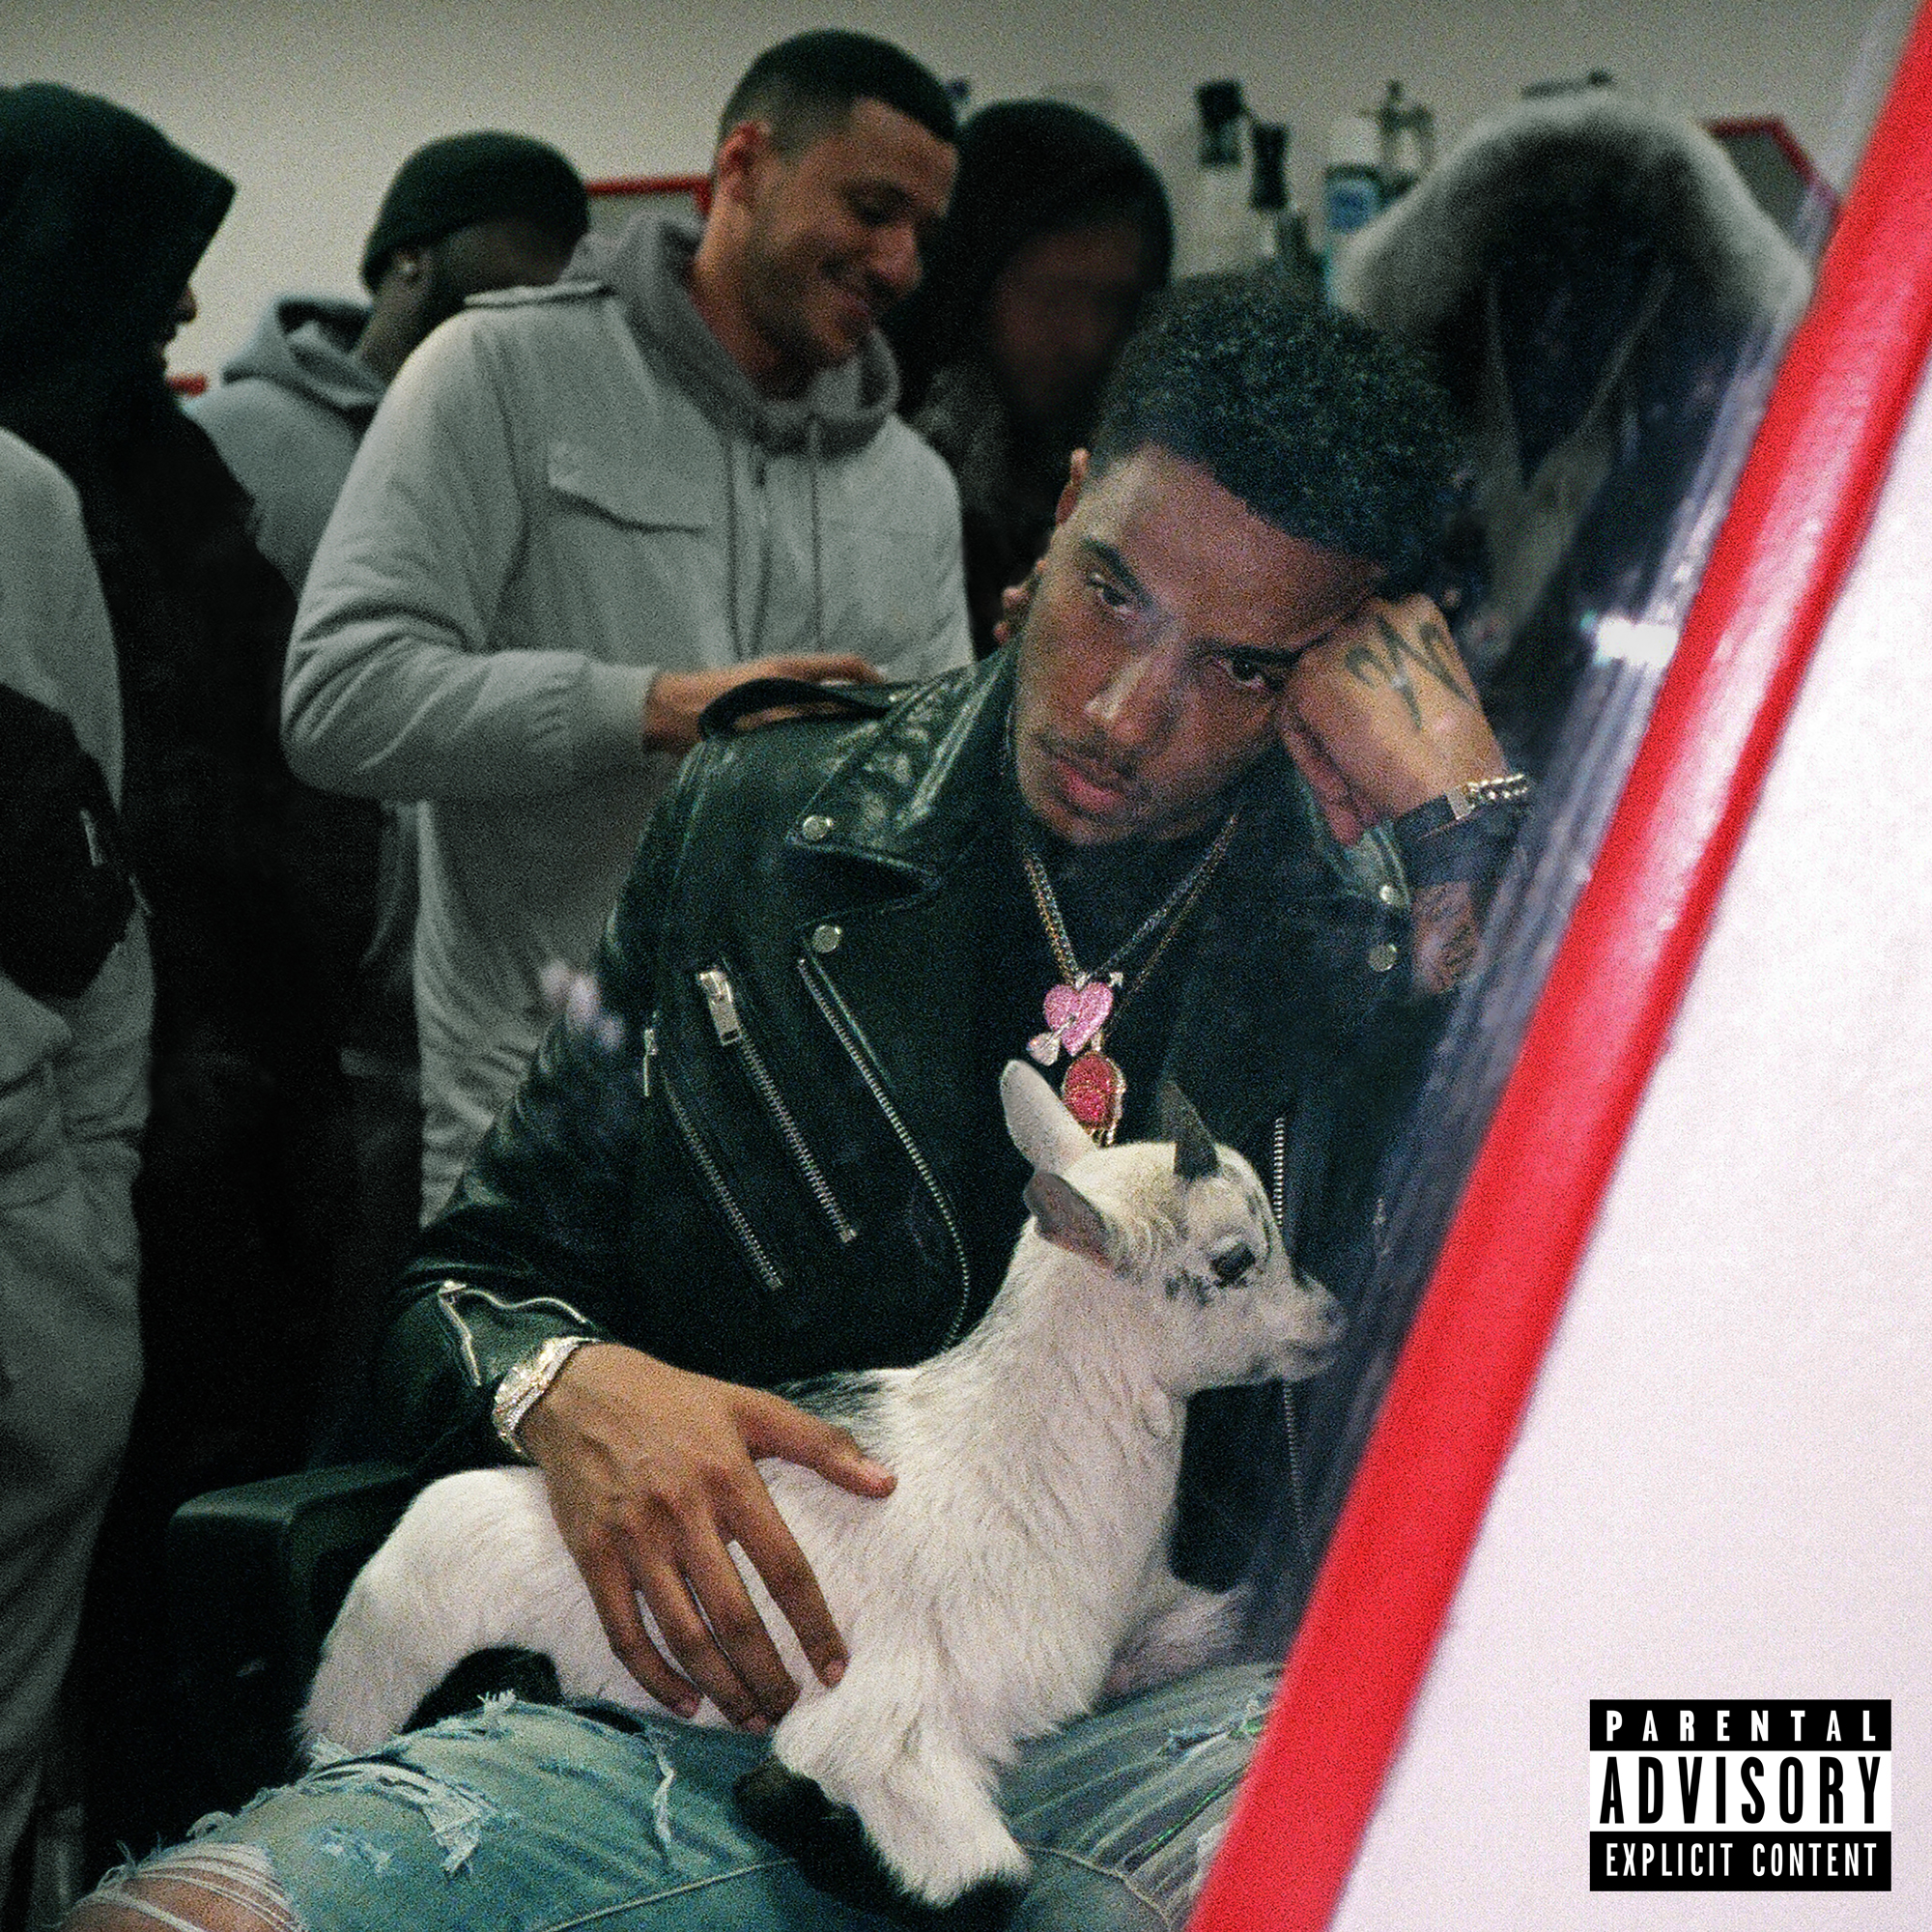 AJ Tracey to release self-titled debut album early next year